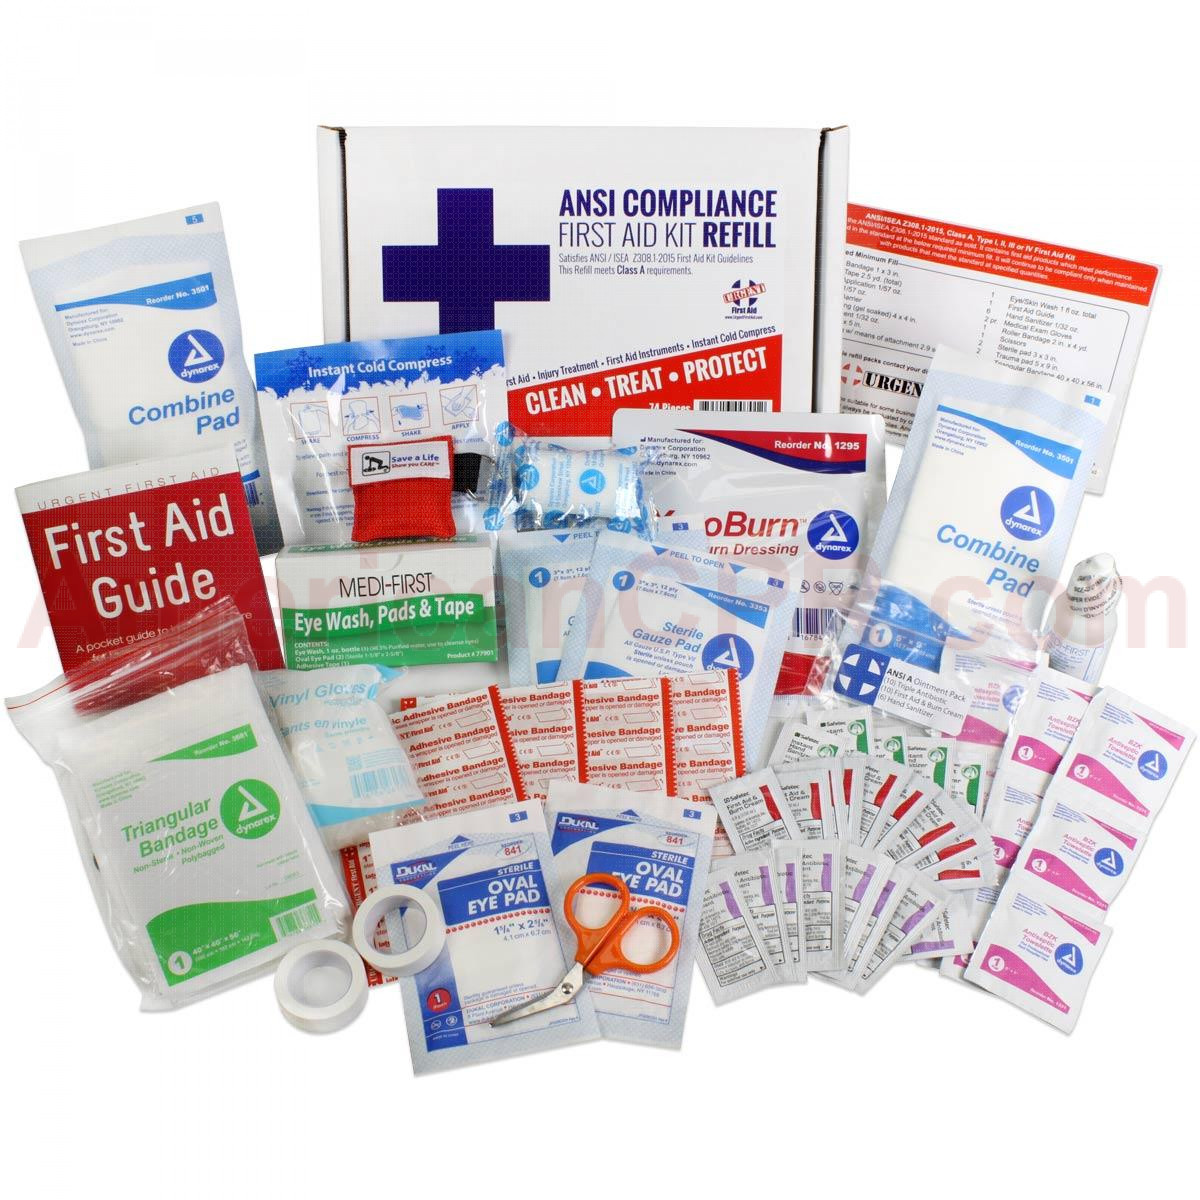 Bulk First Aid Kit Refill, 73 Pieces, ANSI A, 25 Person, Urgent First Aid